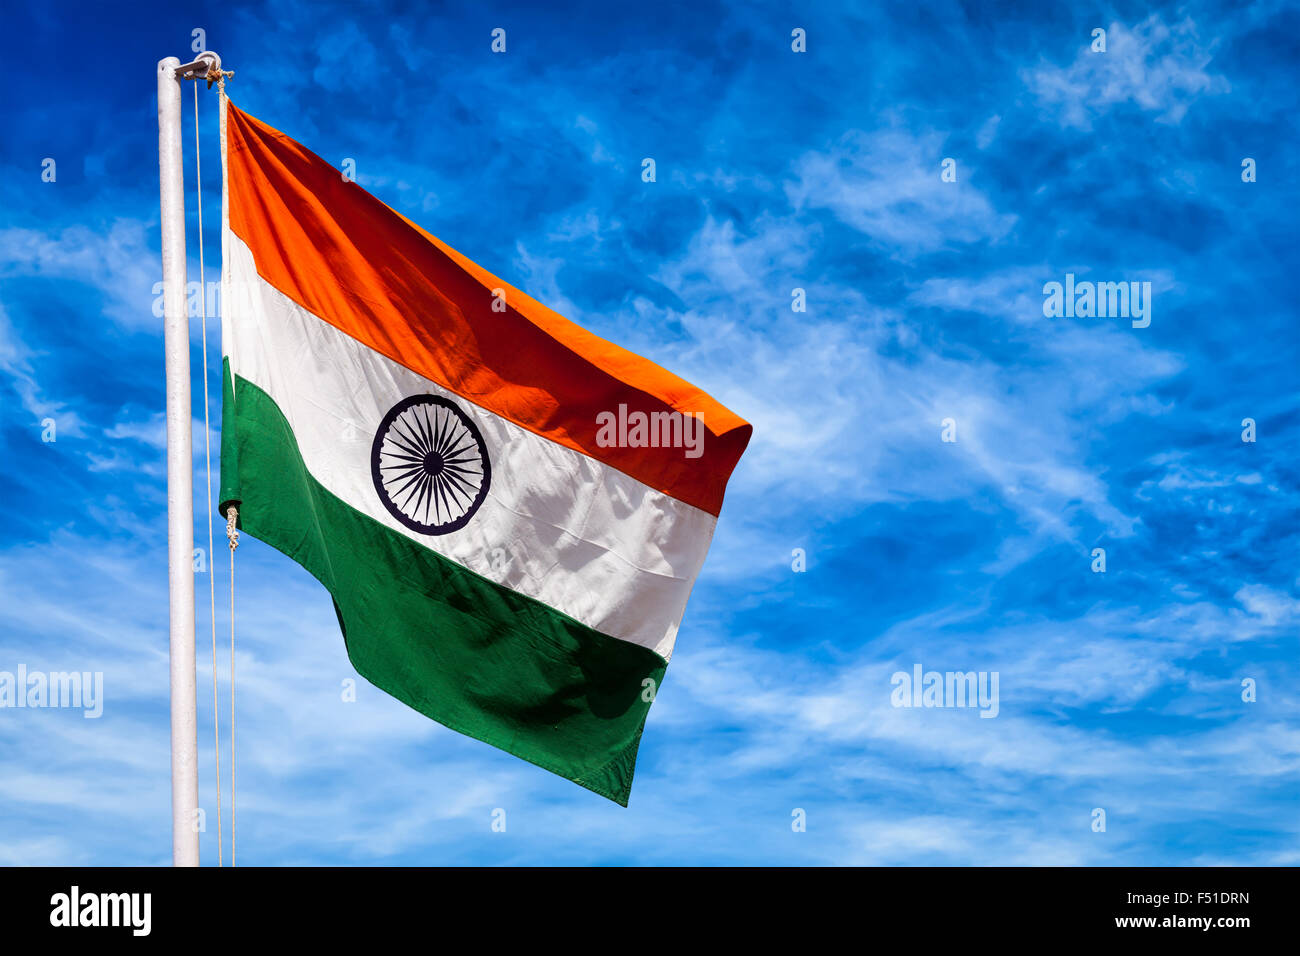 Indian flag of India - Stock Image